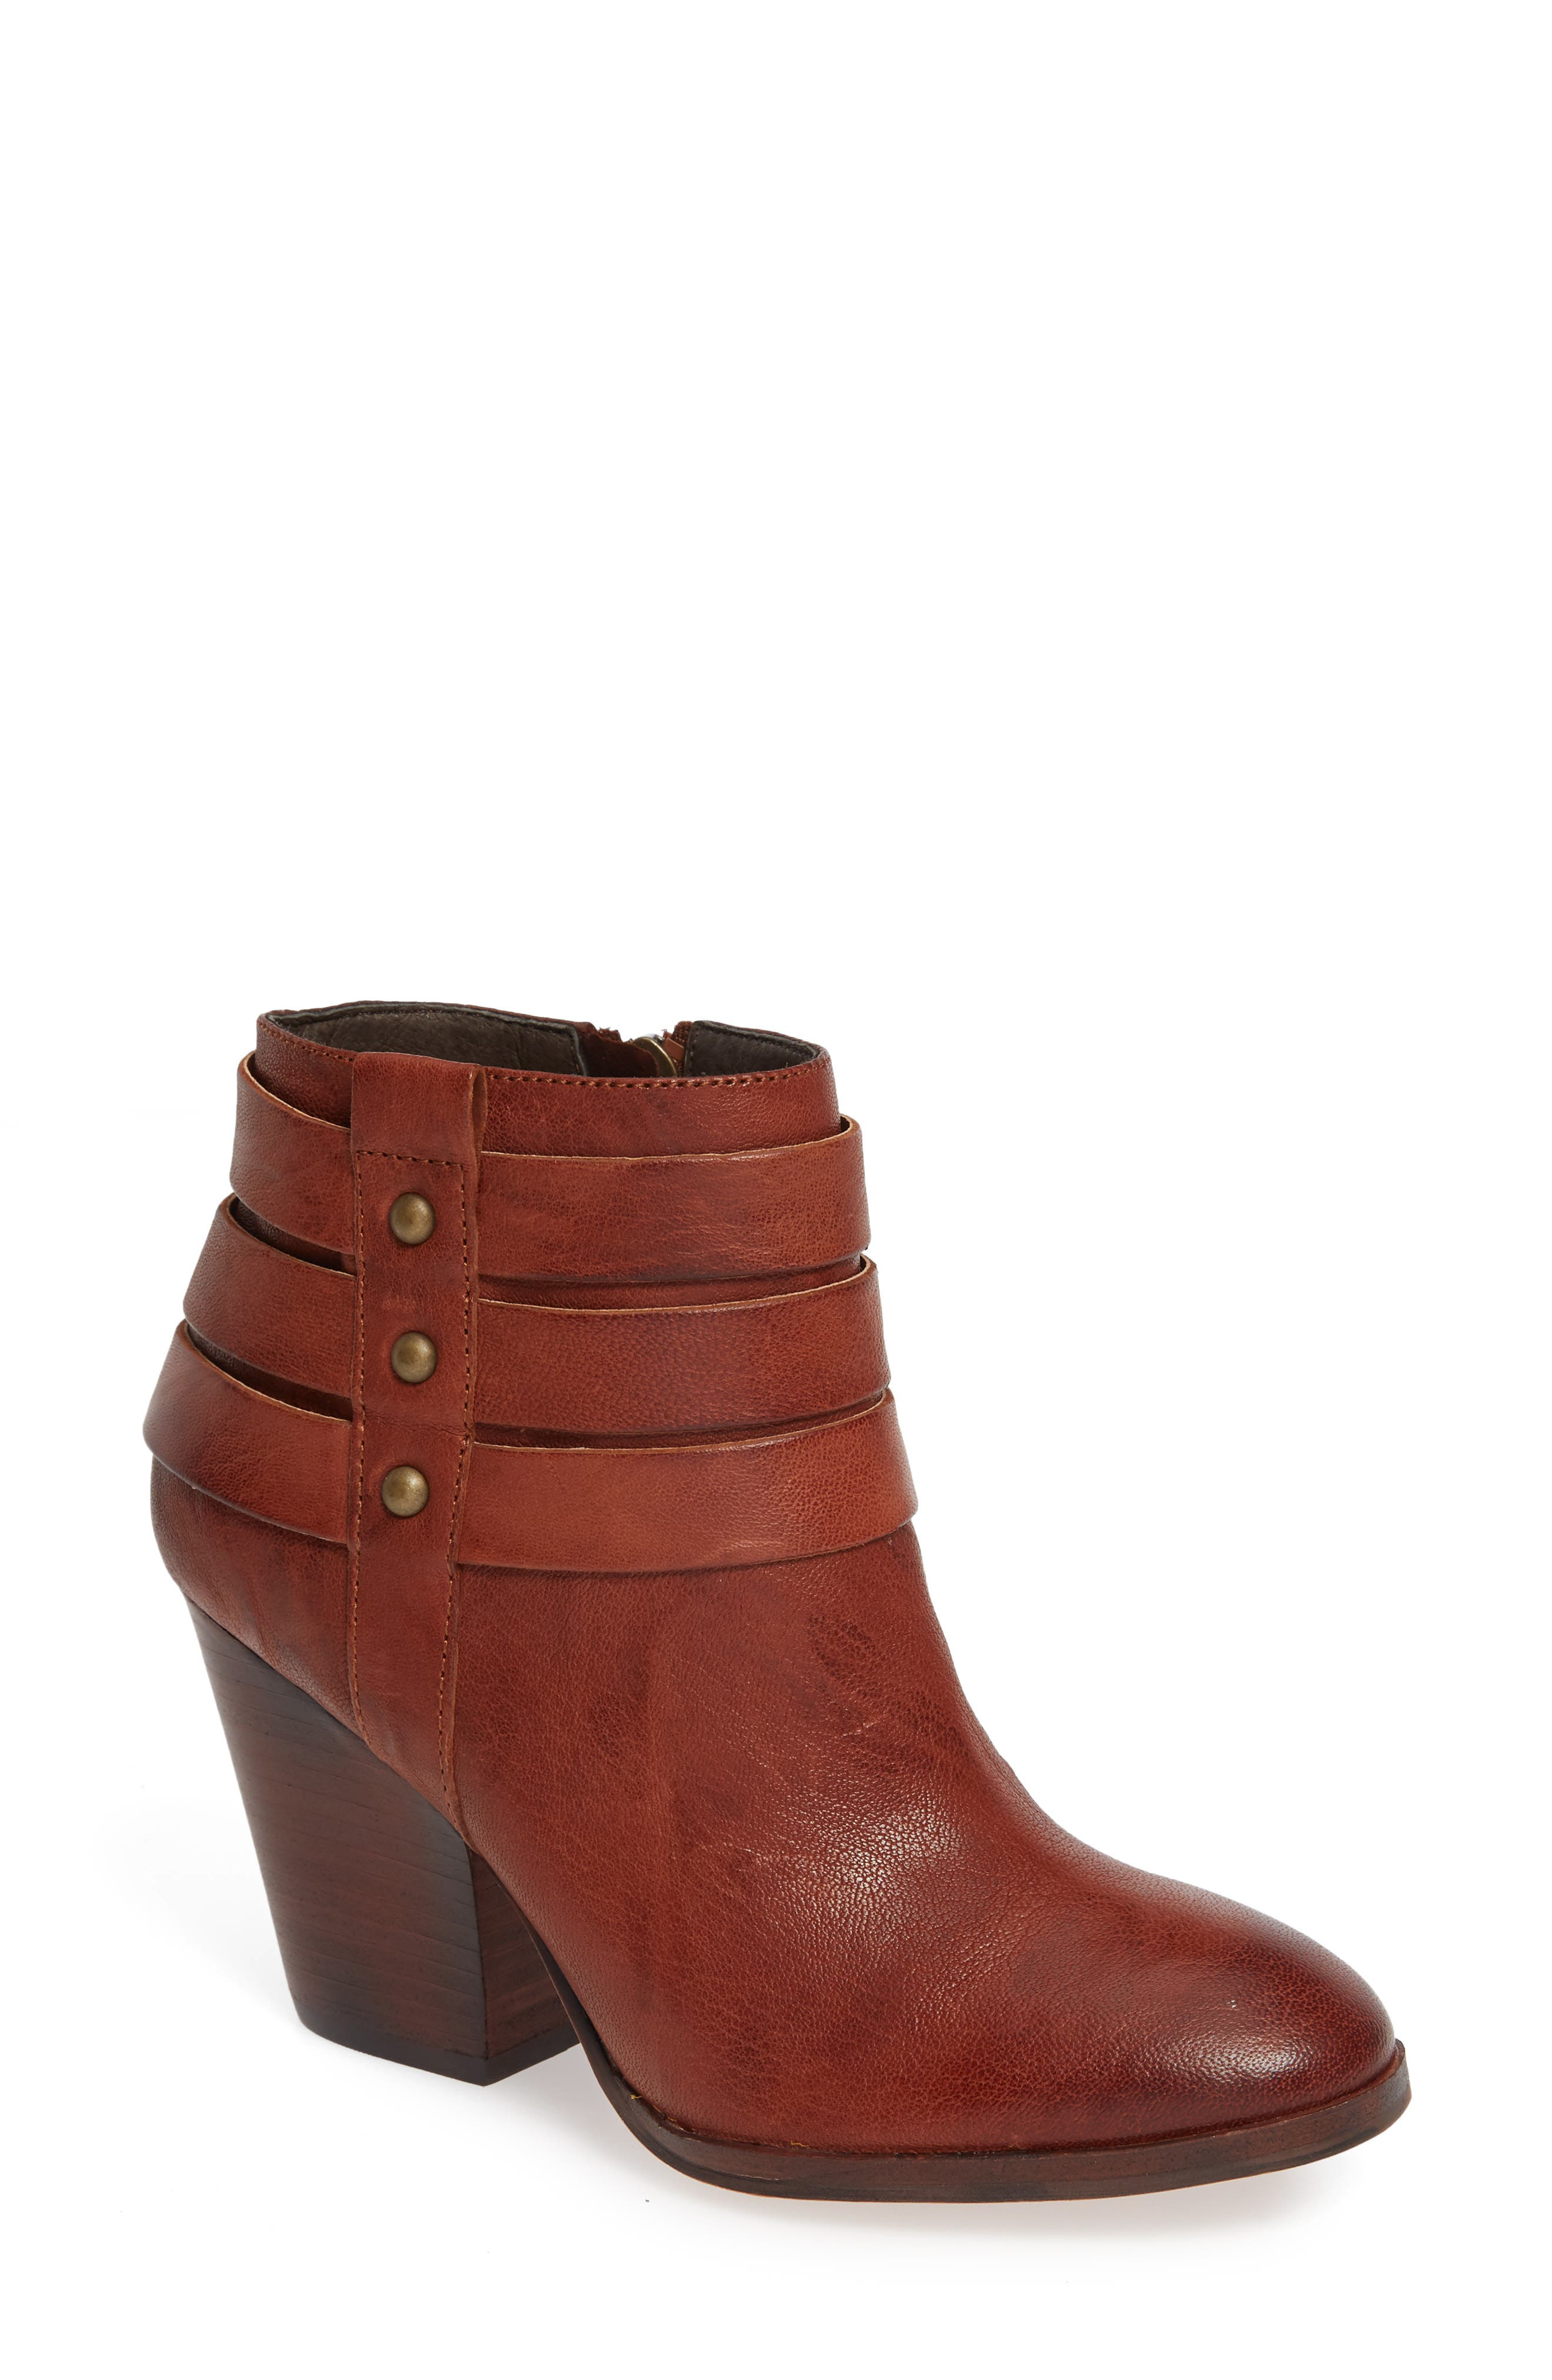 Isola Levina Bootie, Brown